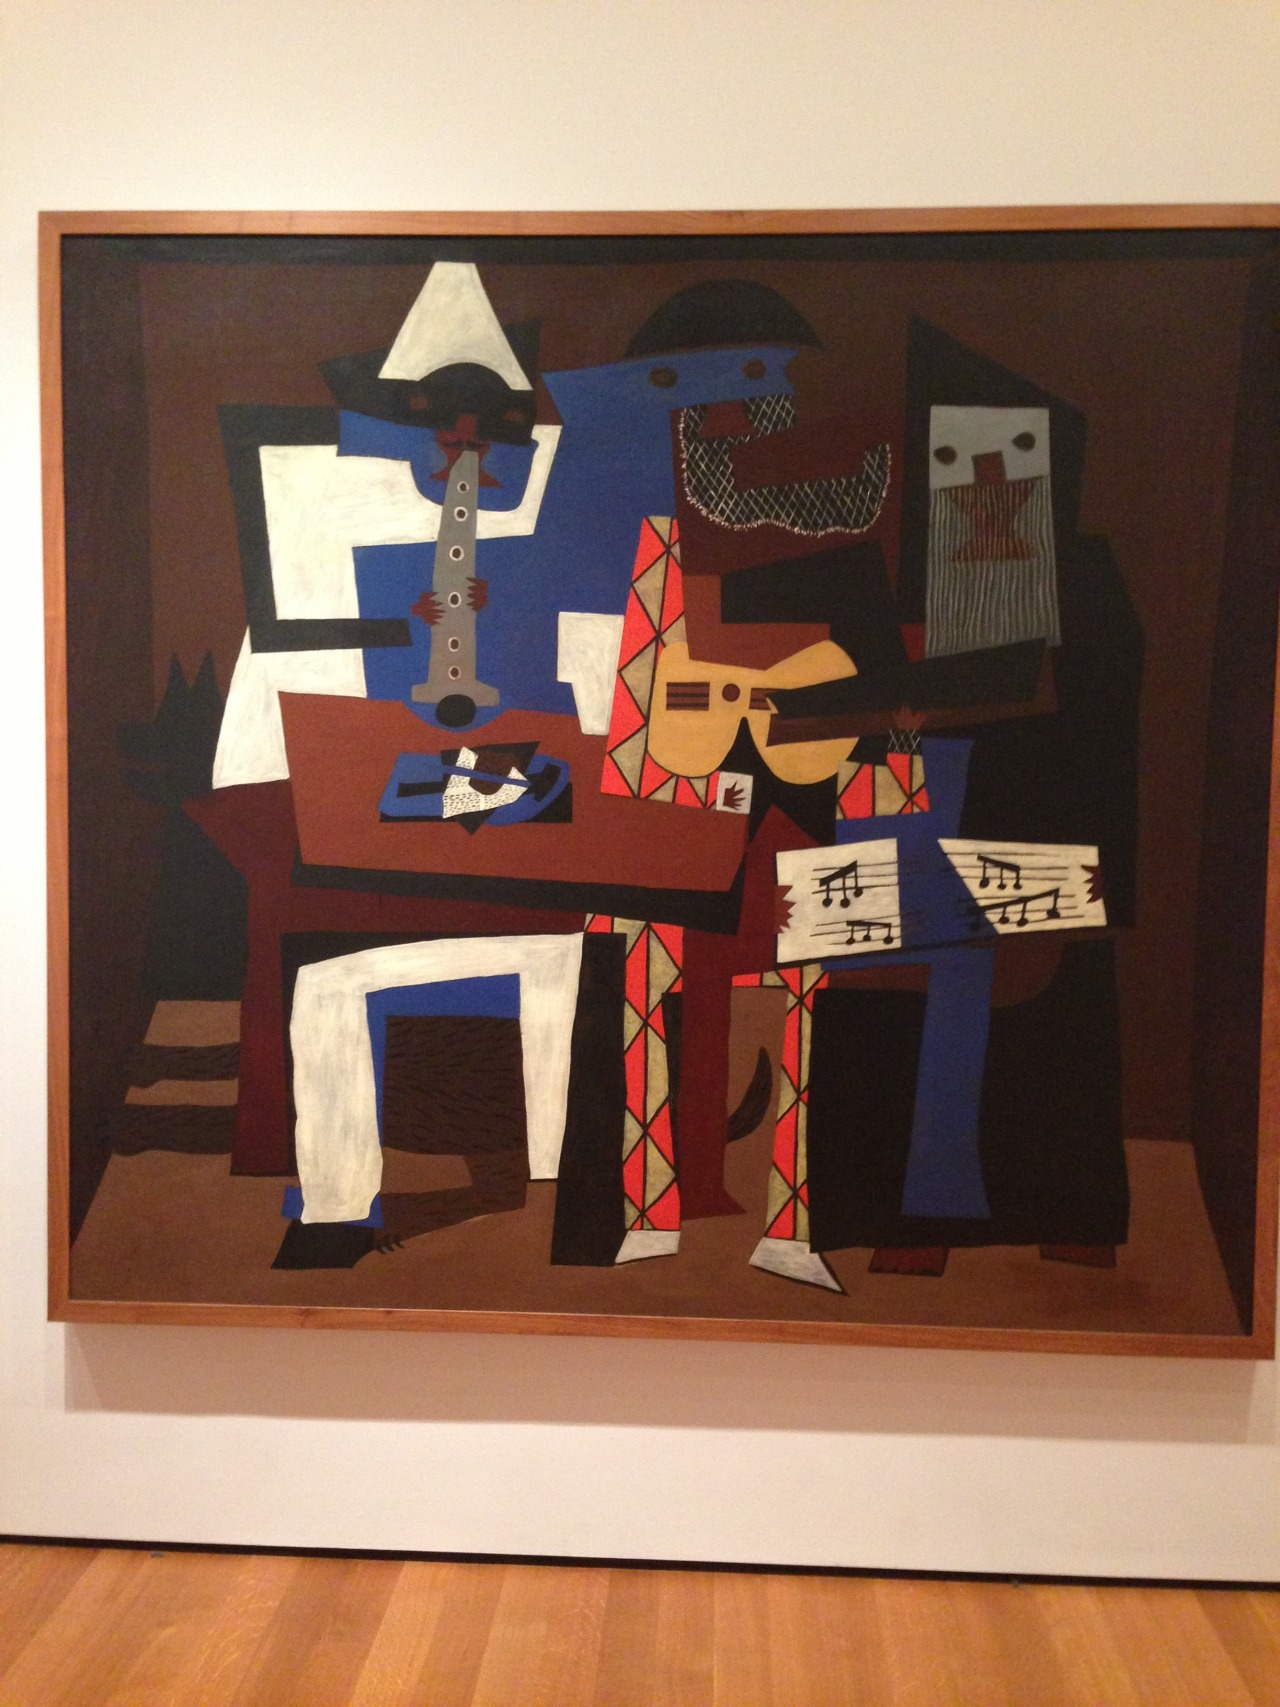 8 of my favorite art pieces from the MOMA:  1. The Three Musicians—Pablo Picasso 2. Echo #25—Jackson Polluck 3. I forgot to write down the title and artist, but a really neat deconstructed modern nude. 4. The Bather—Paul Cezane 5. Broadway Boogie Woogie—Piet Mondrian 6. Spiderman—Sigmar Polke 7. The Scream—Edvard Munch 8. Madonna—Edvard Munch